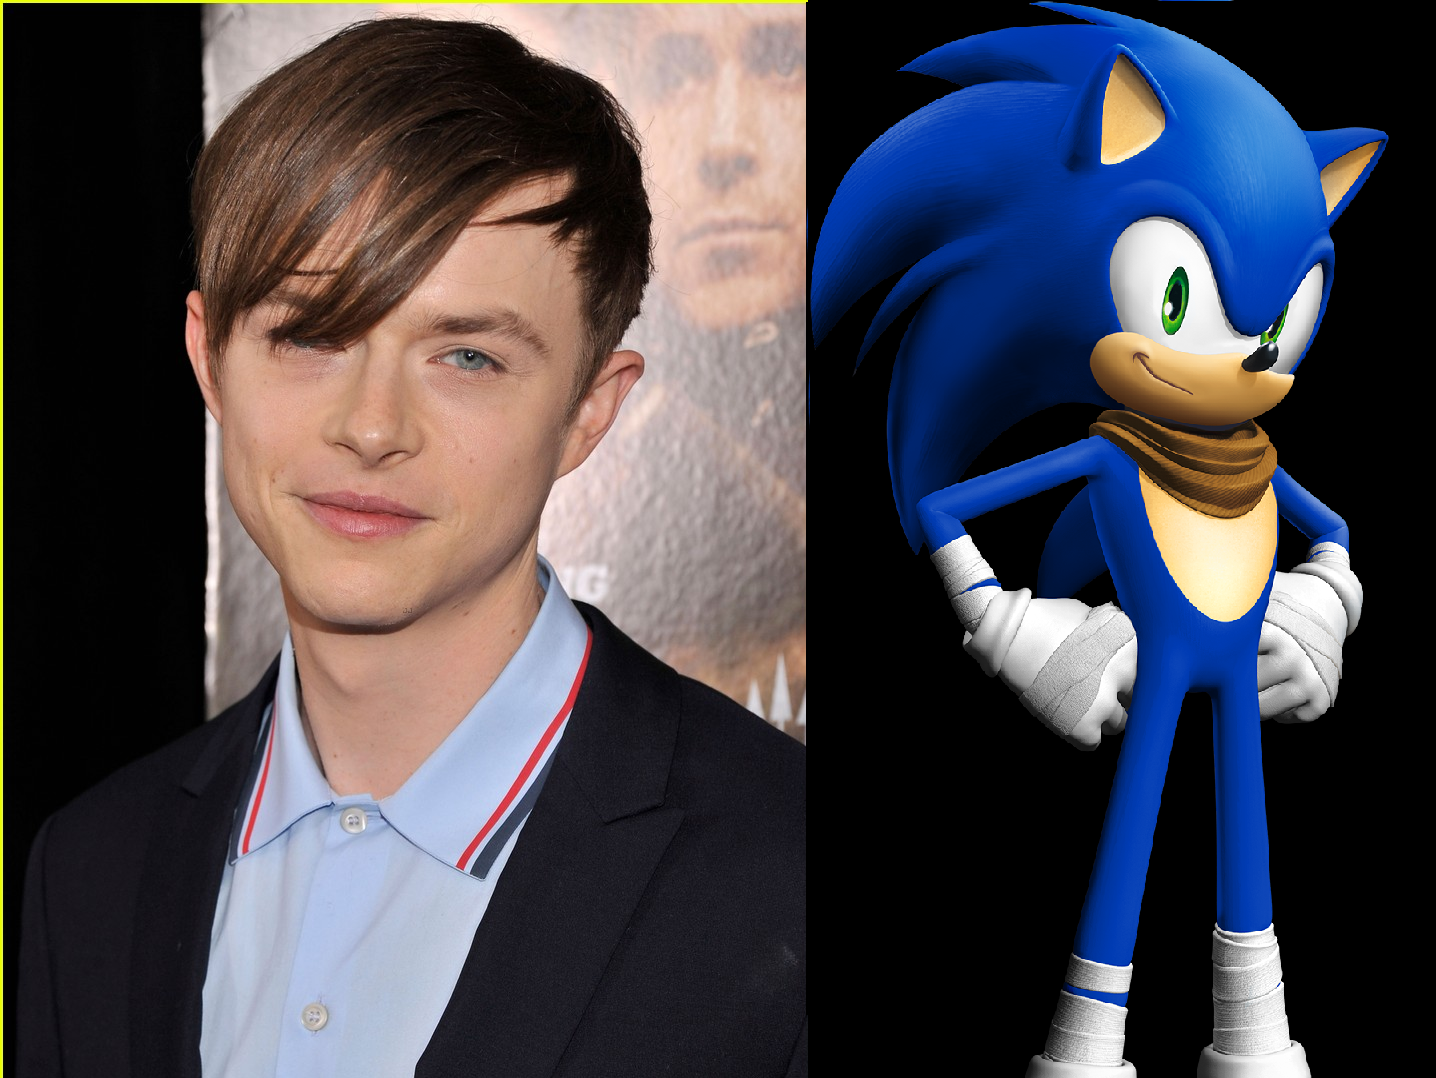 sonic the hedgehog movie 2019 cast